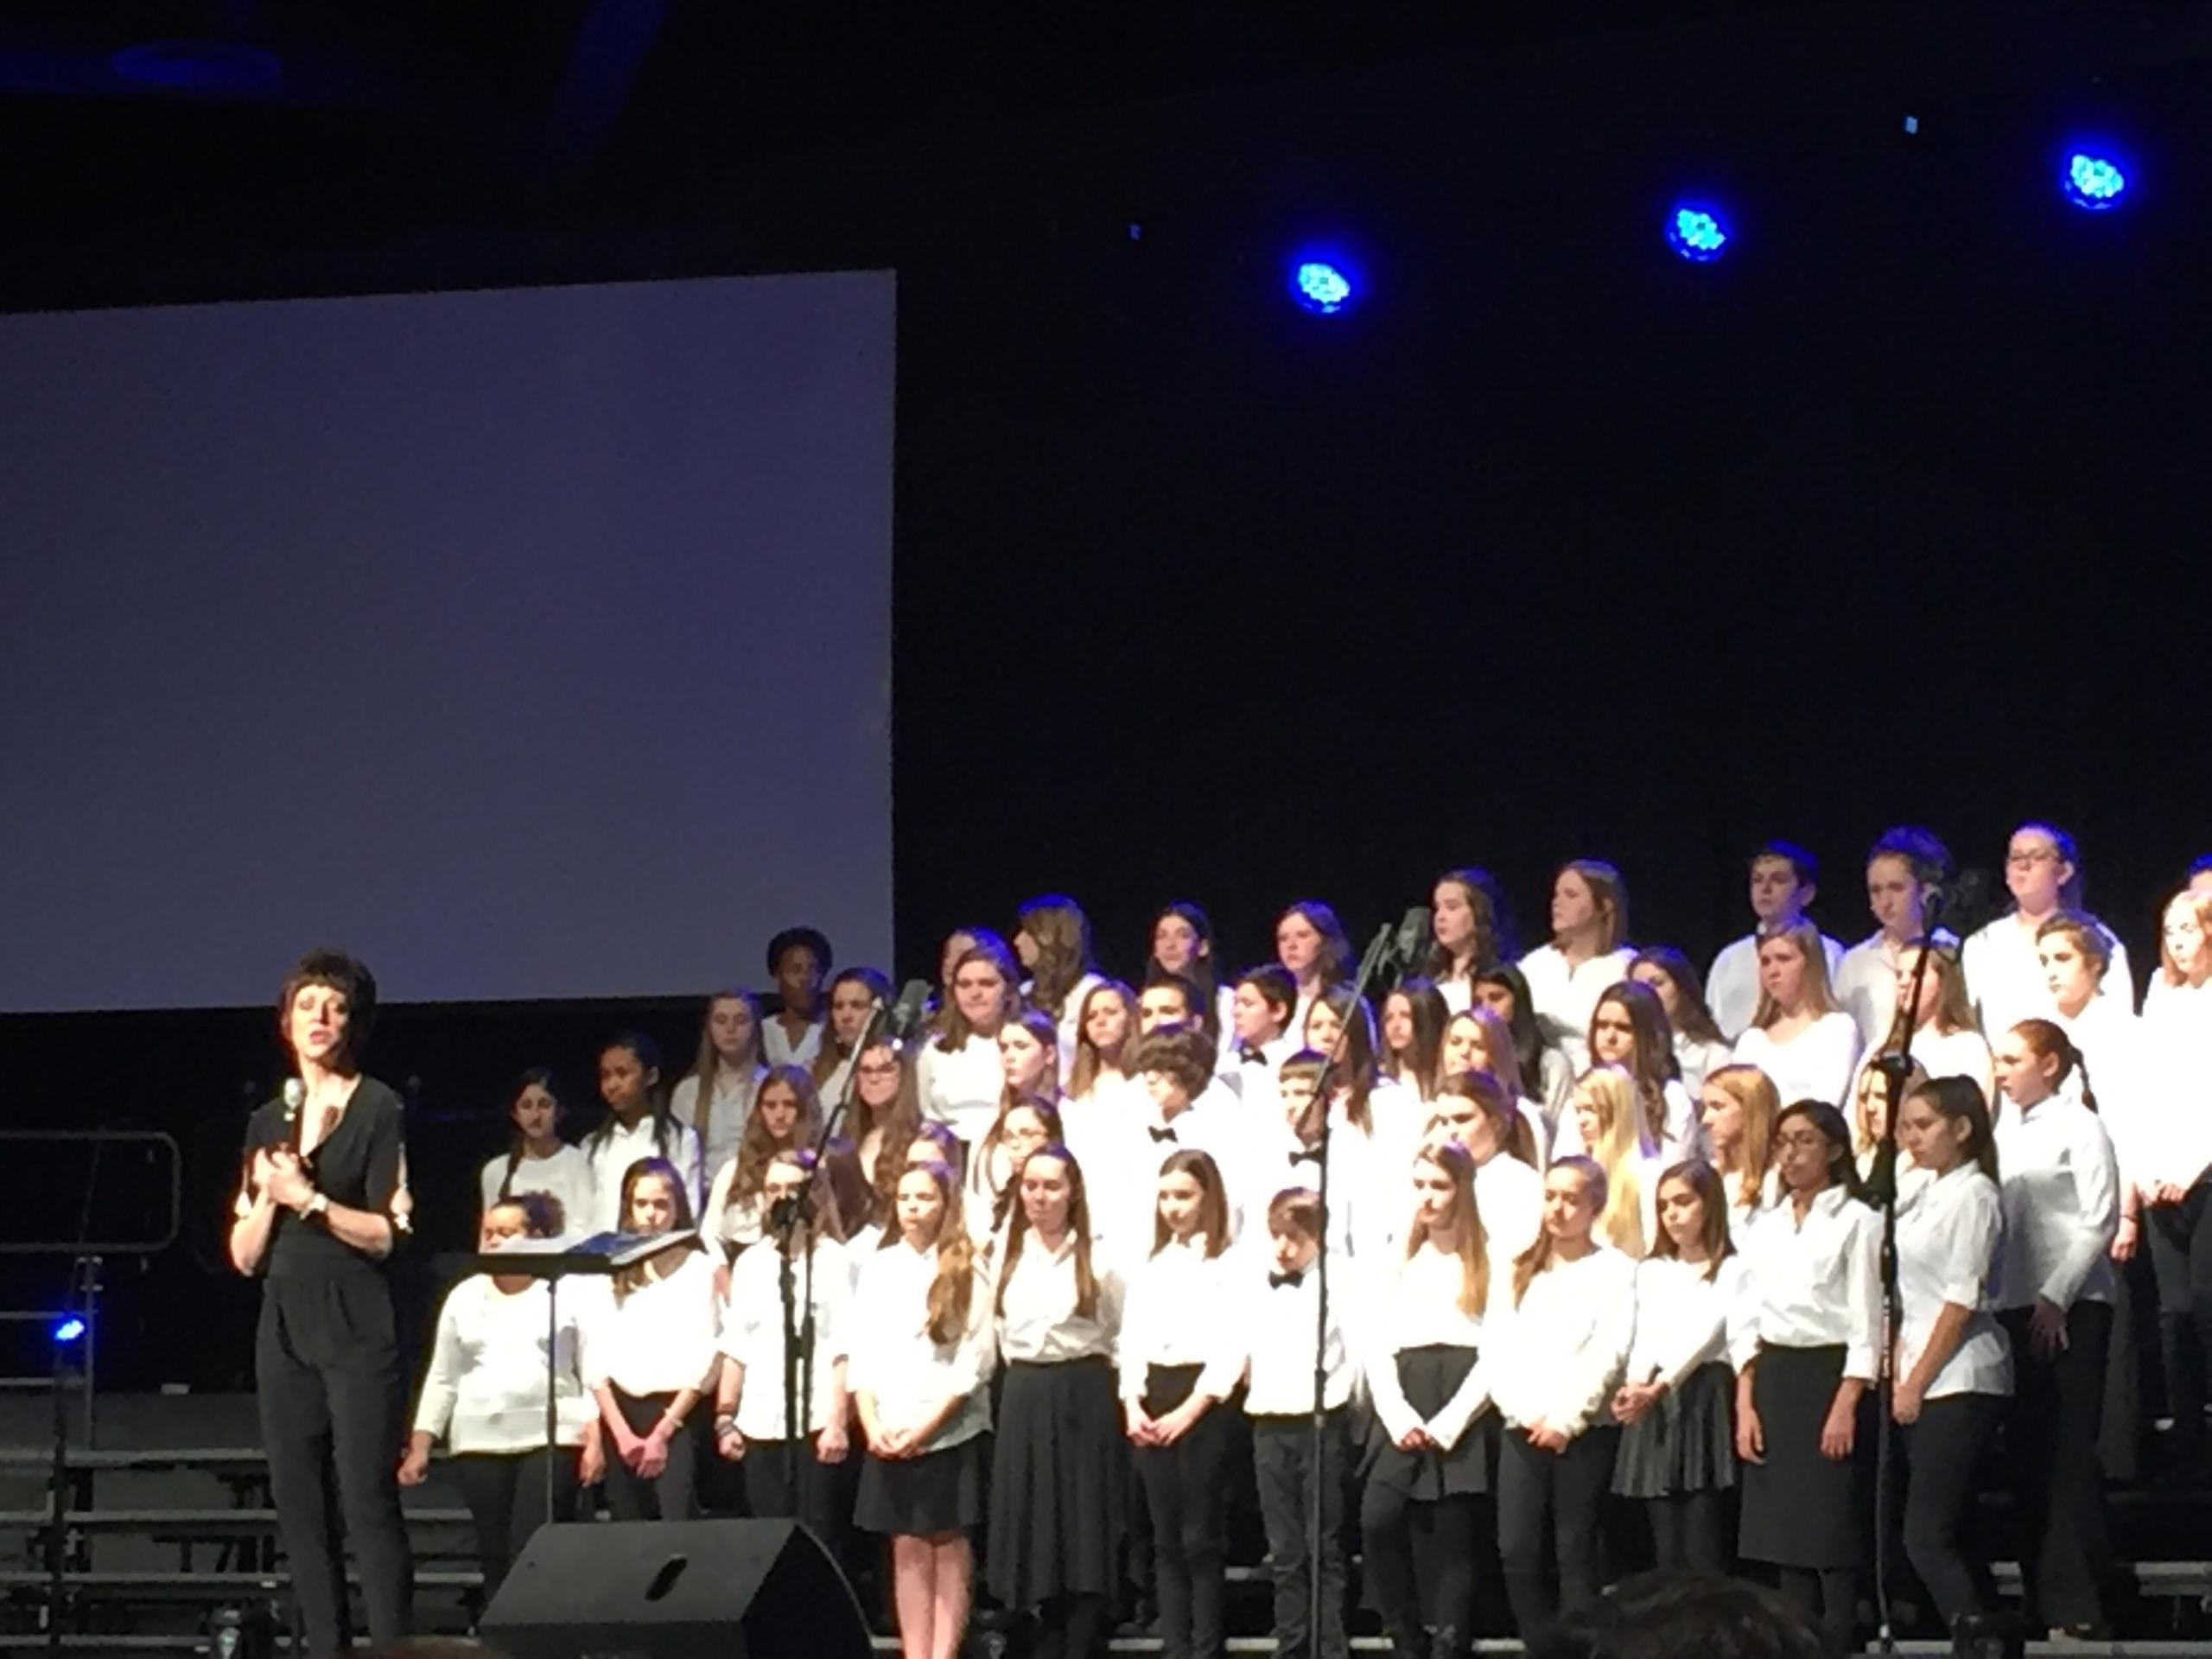 Heritage Middle School 7th Grade Chorus Take Home Awards